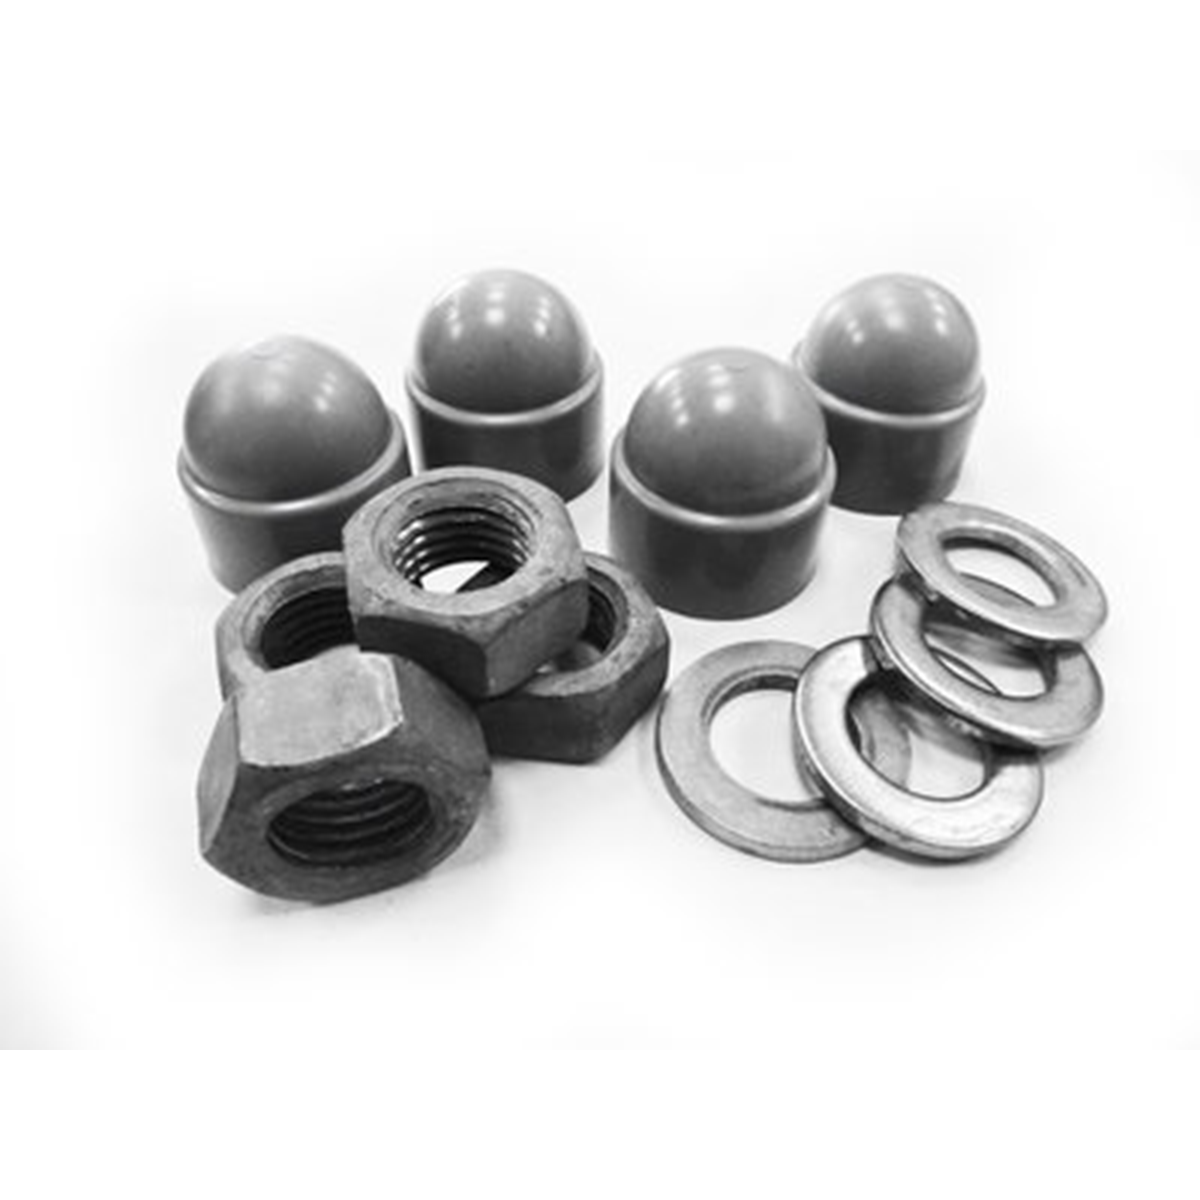 ROSA hot-dip galvanized connecting elements